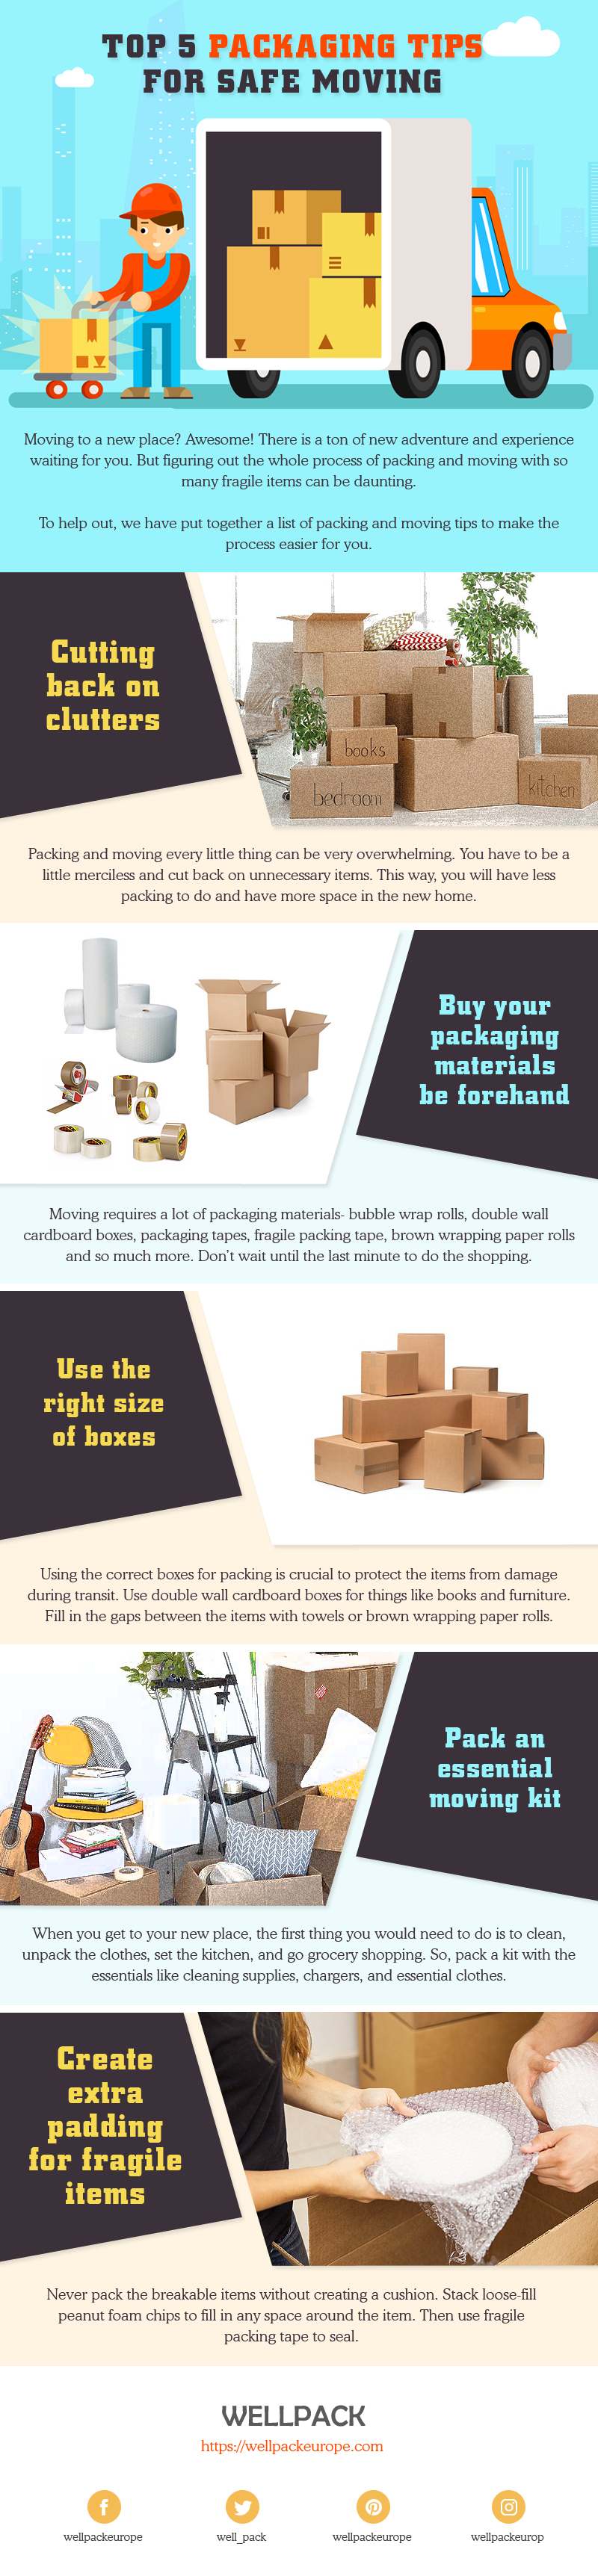 Essential Packaging Tips for a Safe Move